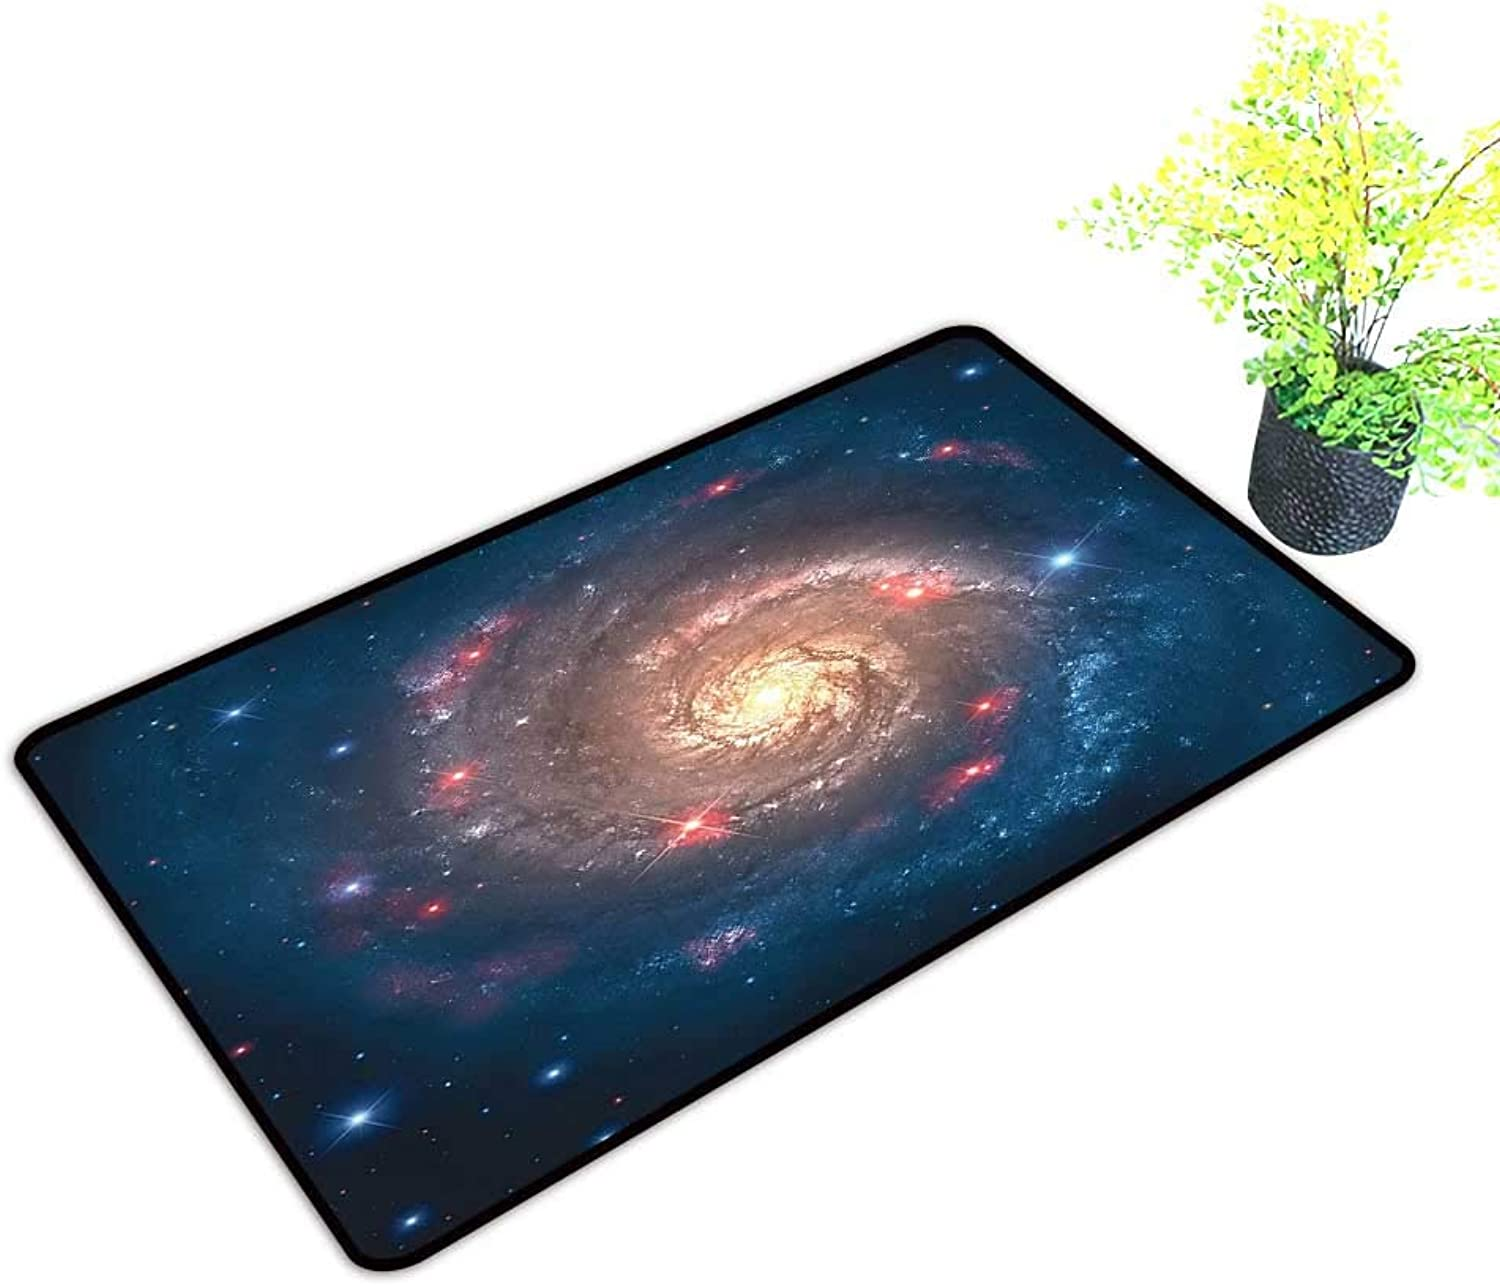 Gmnalahome Front Door Mat for Indoor Outdoor Entry Rug Mystical Spiral Galaxy Expanse bey Way Planet Astral Space Dark bluee Keep Your House Clean W39 x H19 INCH